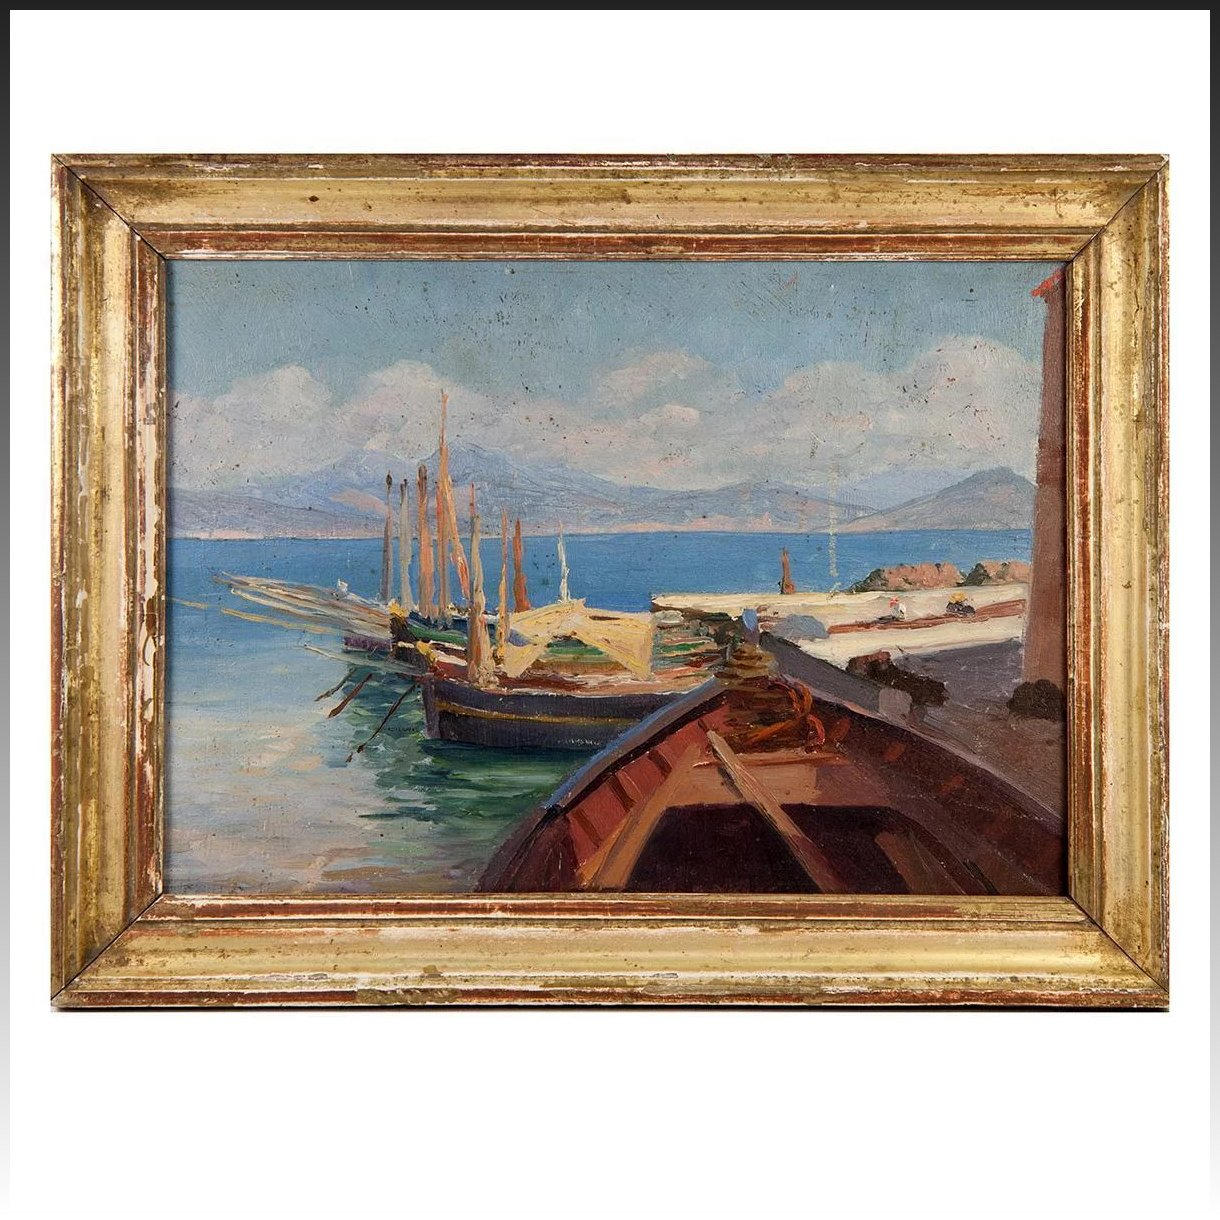 Antique French Oil Painting in Frame, Harbor Boats Landscape ...